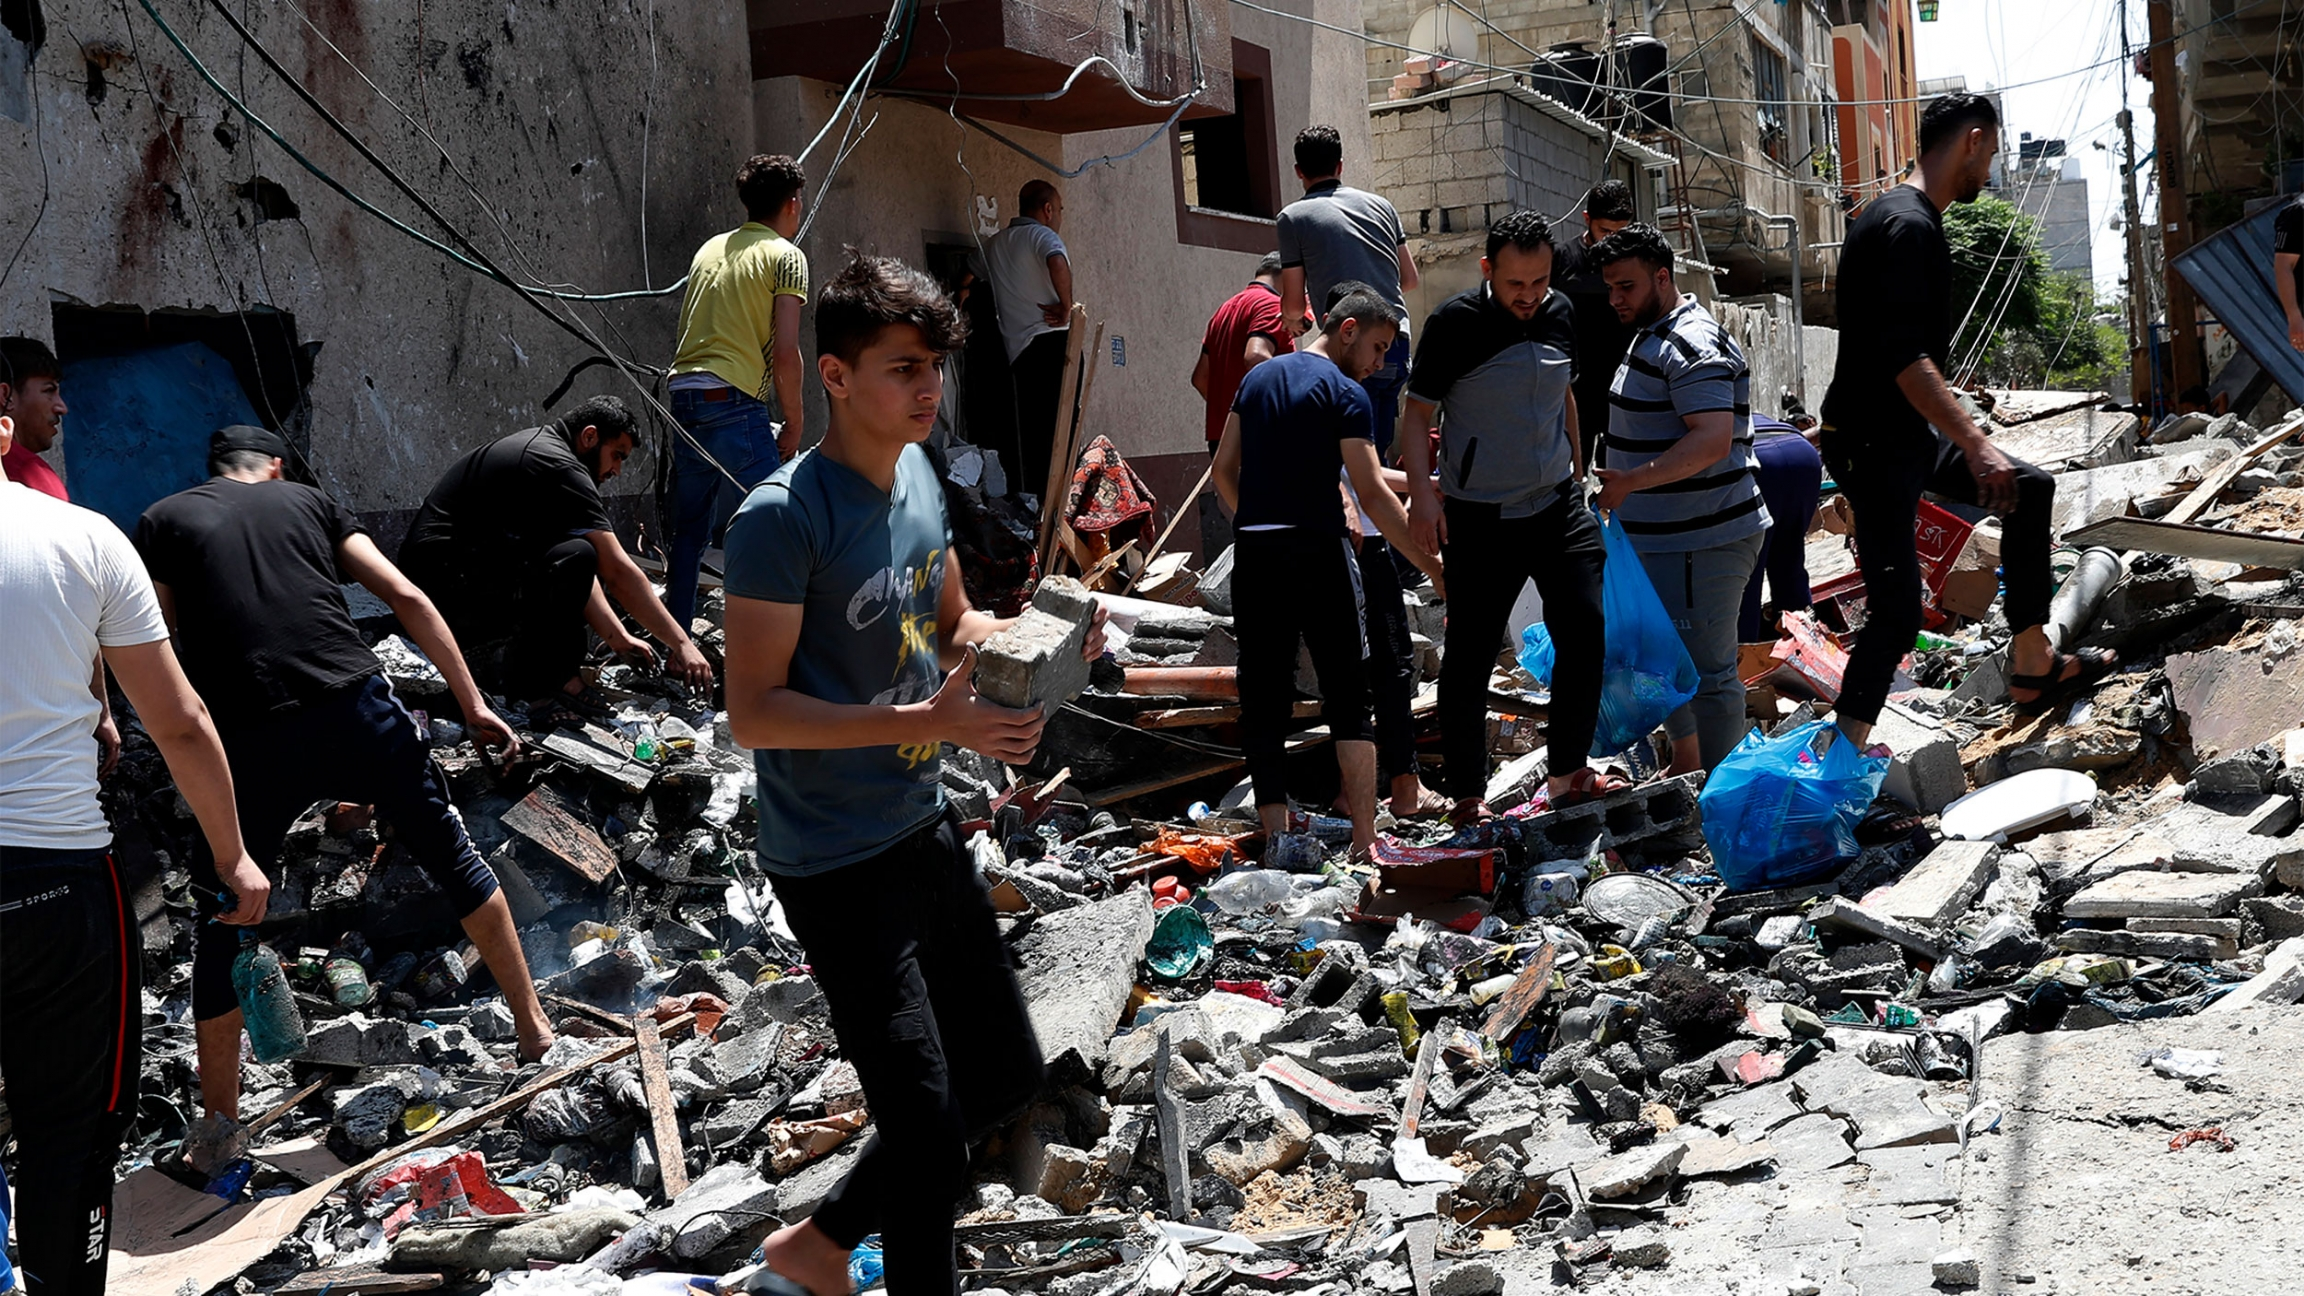 Young man in blue shirt lifts a piece of concrete as other men sift through rubble after an airstrike